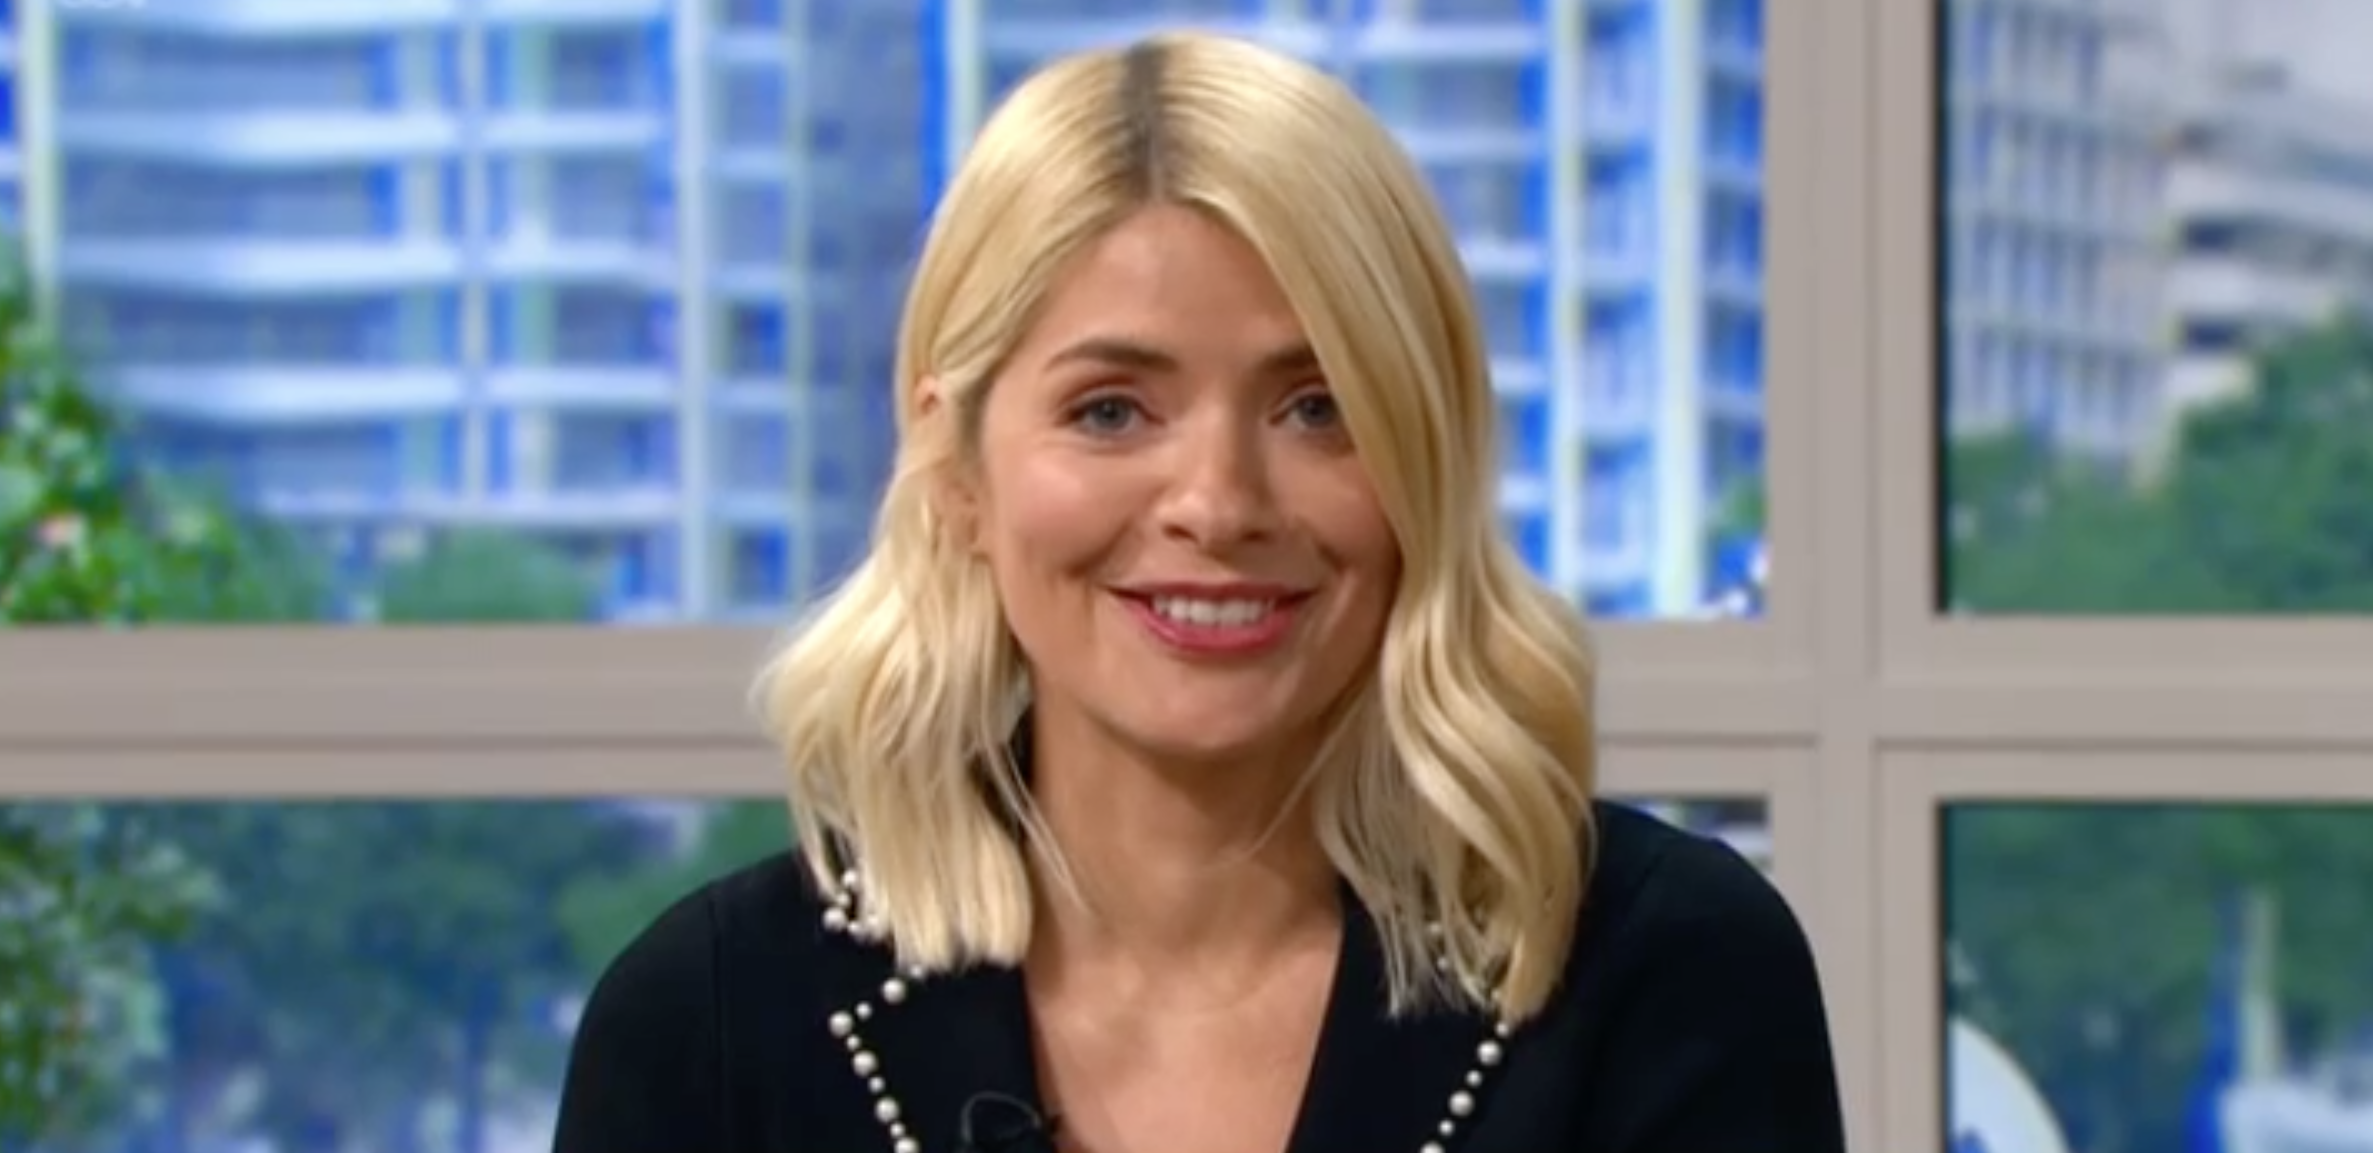 This Morning viewers in shock as Phillip Schofield makes crude joke about Holly Willoughby's dress